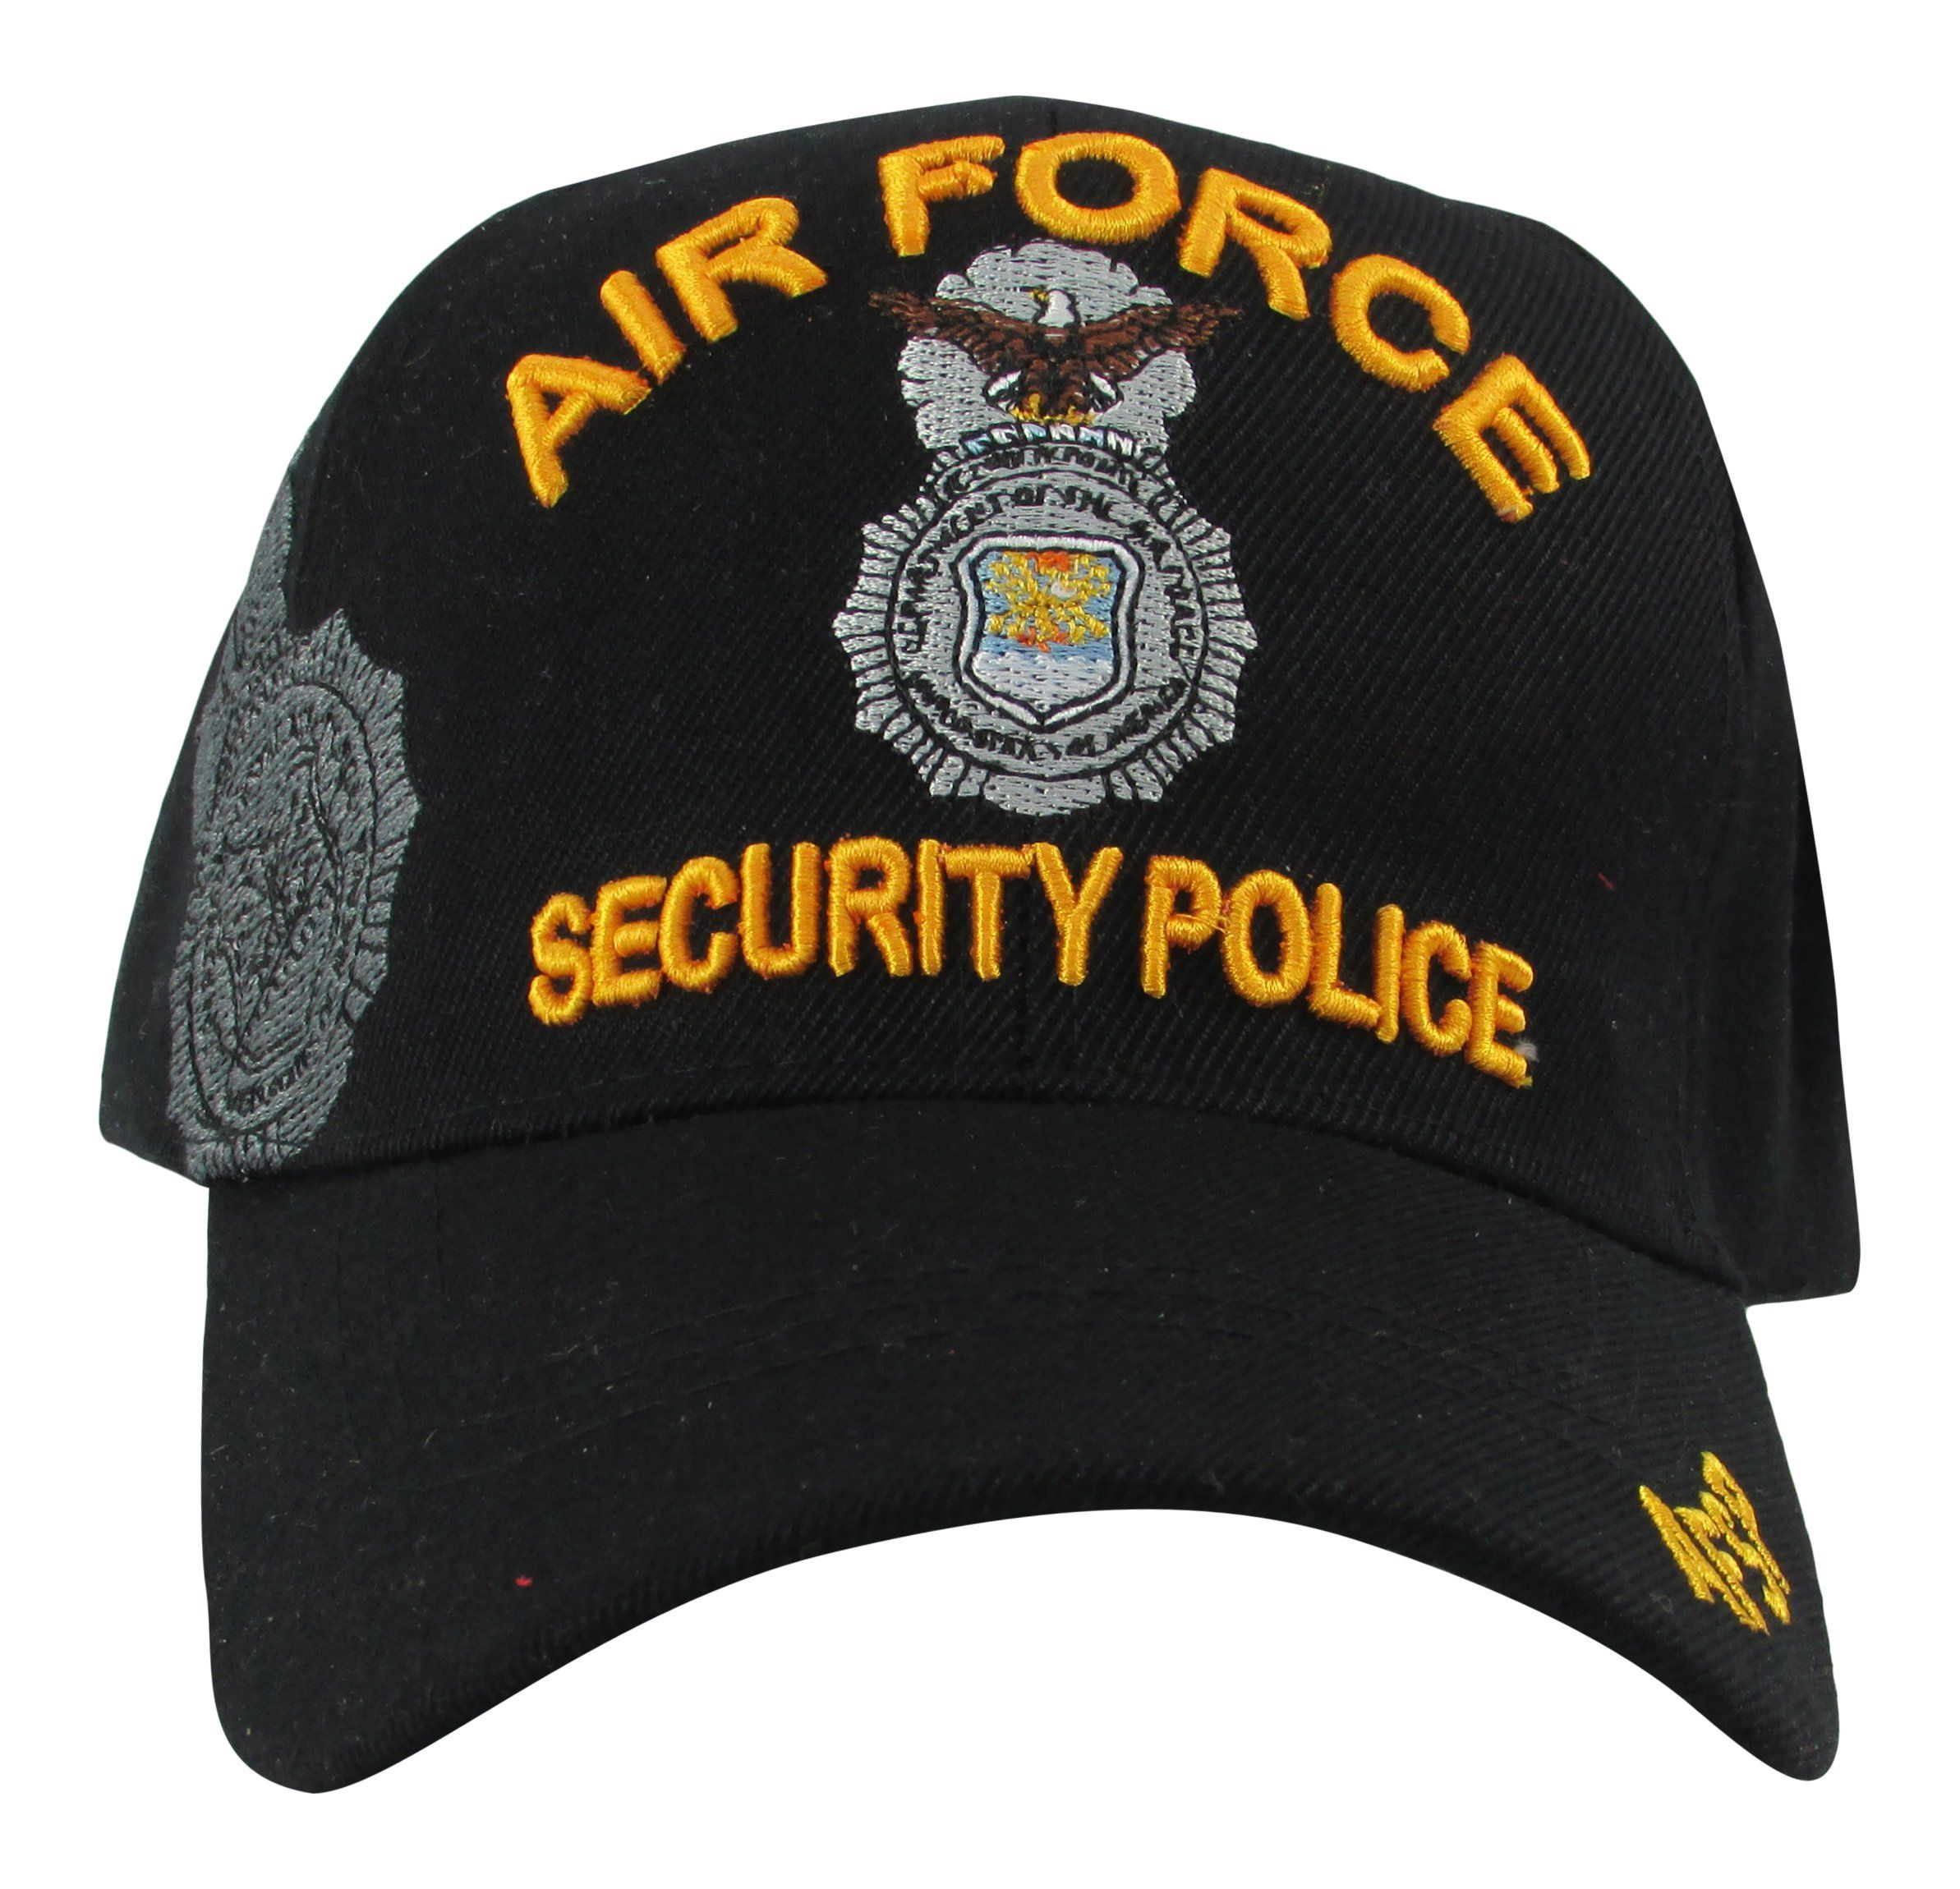 US Warriors U.S. Air Force Security Police Baseball Cap 885a2cb51f08